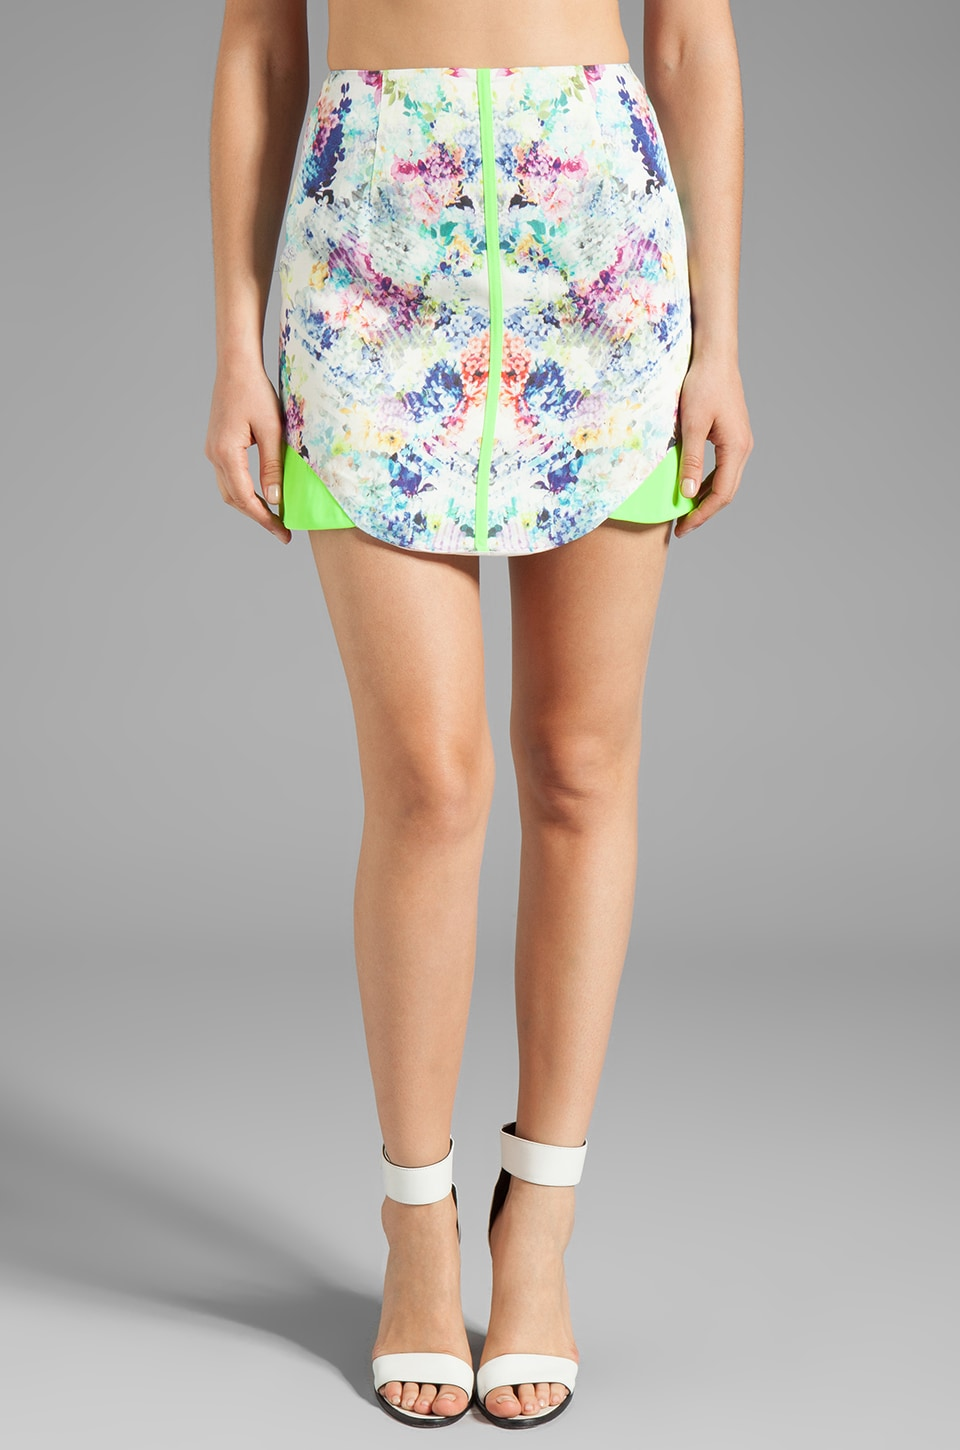 Finders Keepers All the Colors Skirt in Flower Bomb White/Sunny Lime